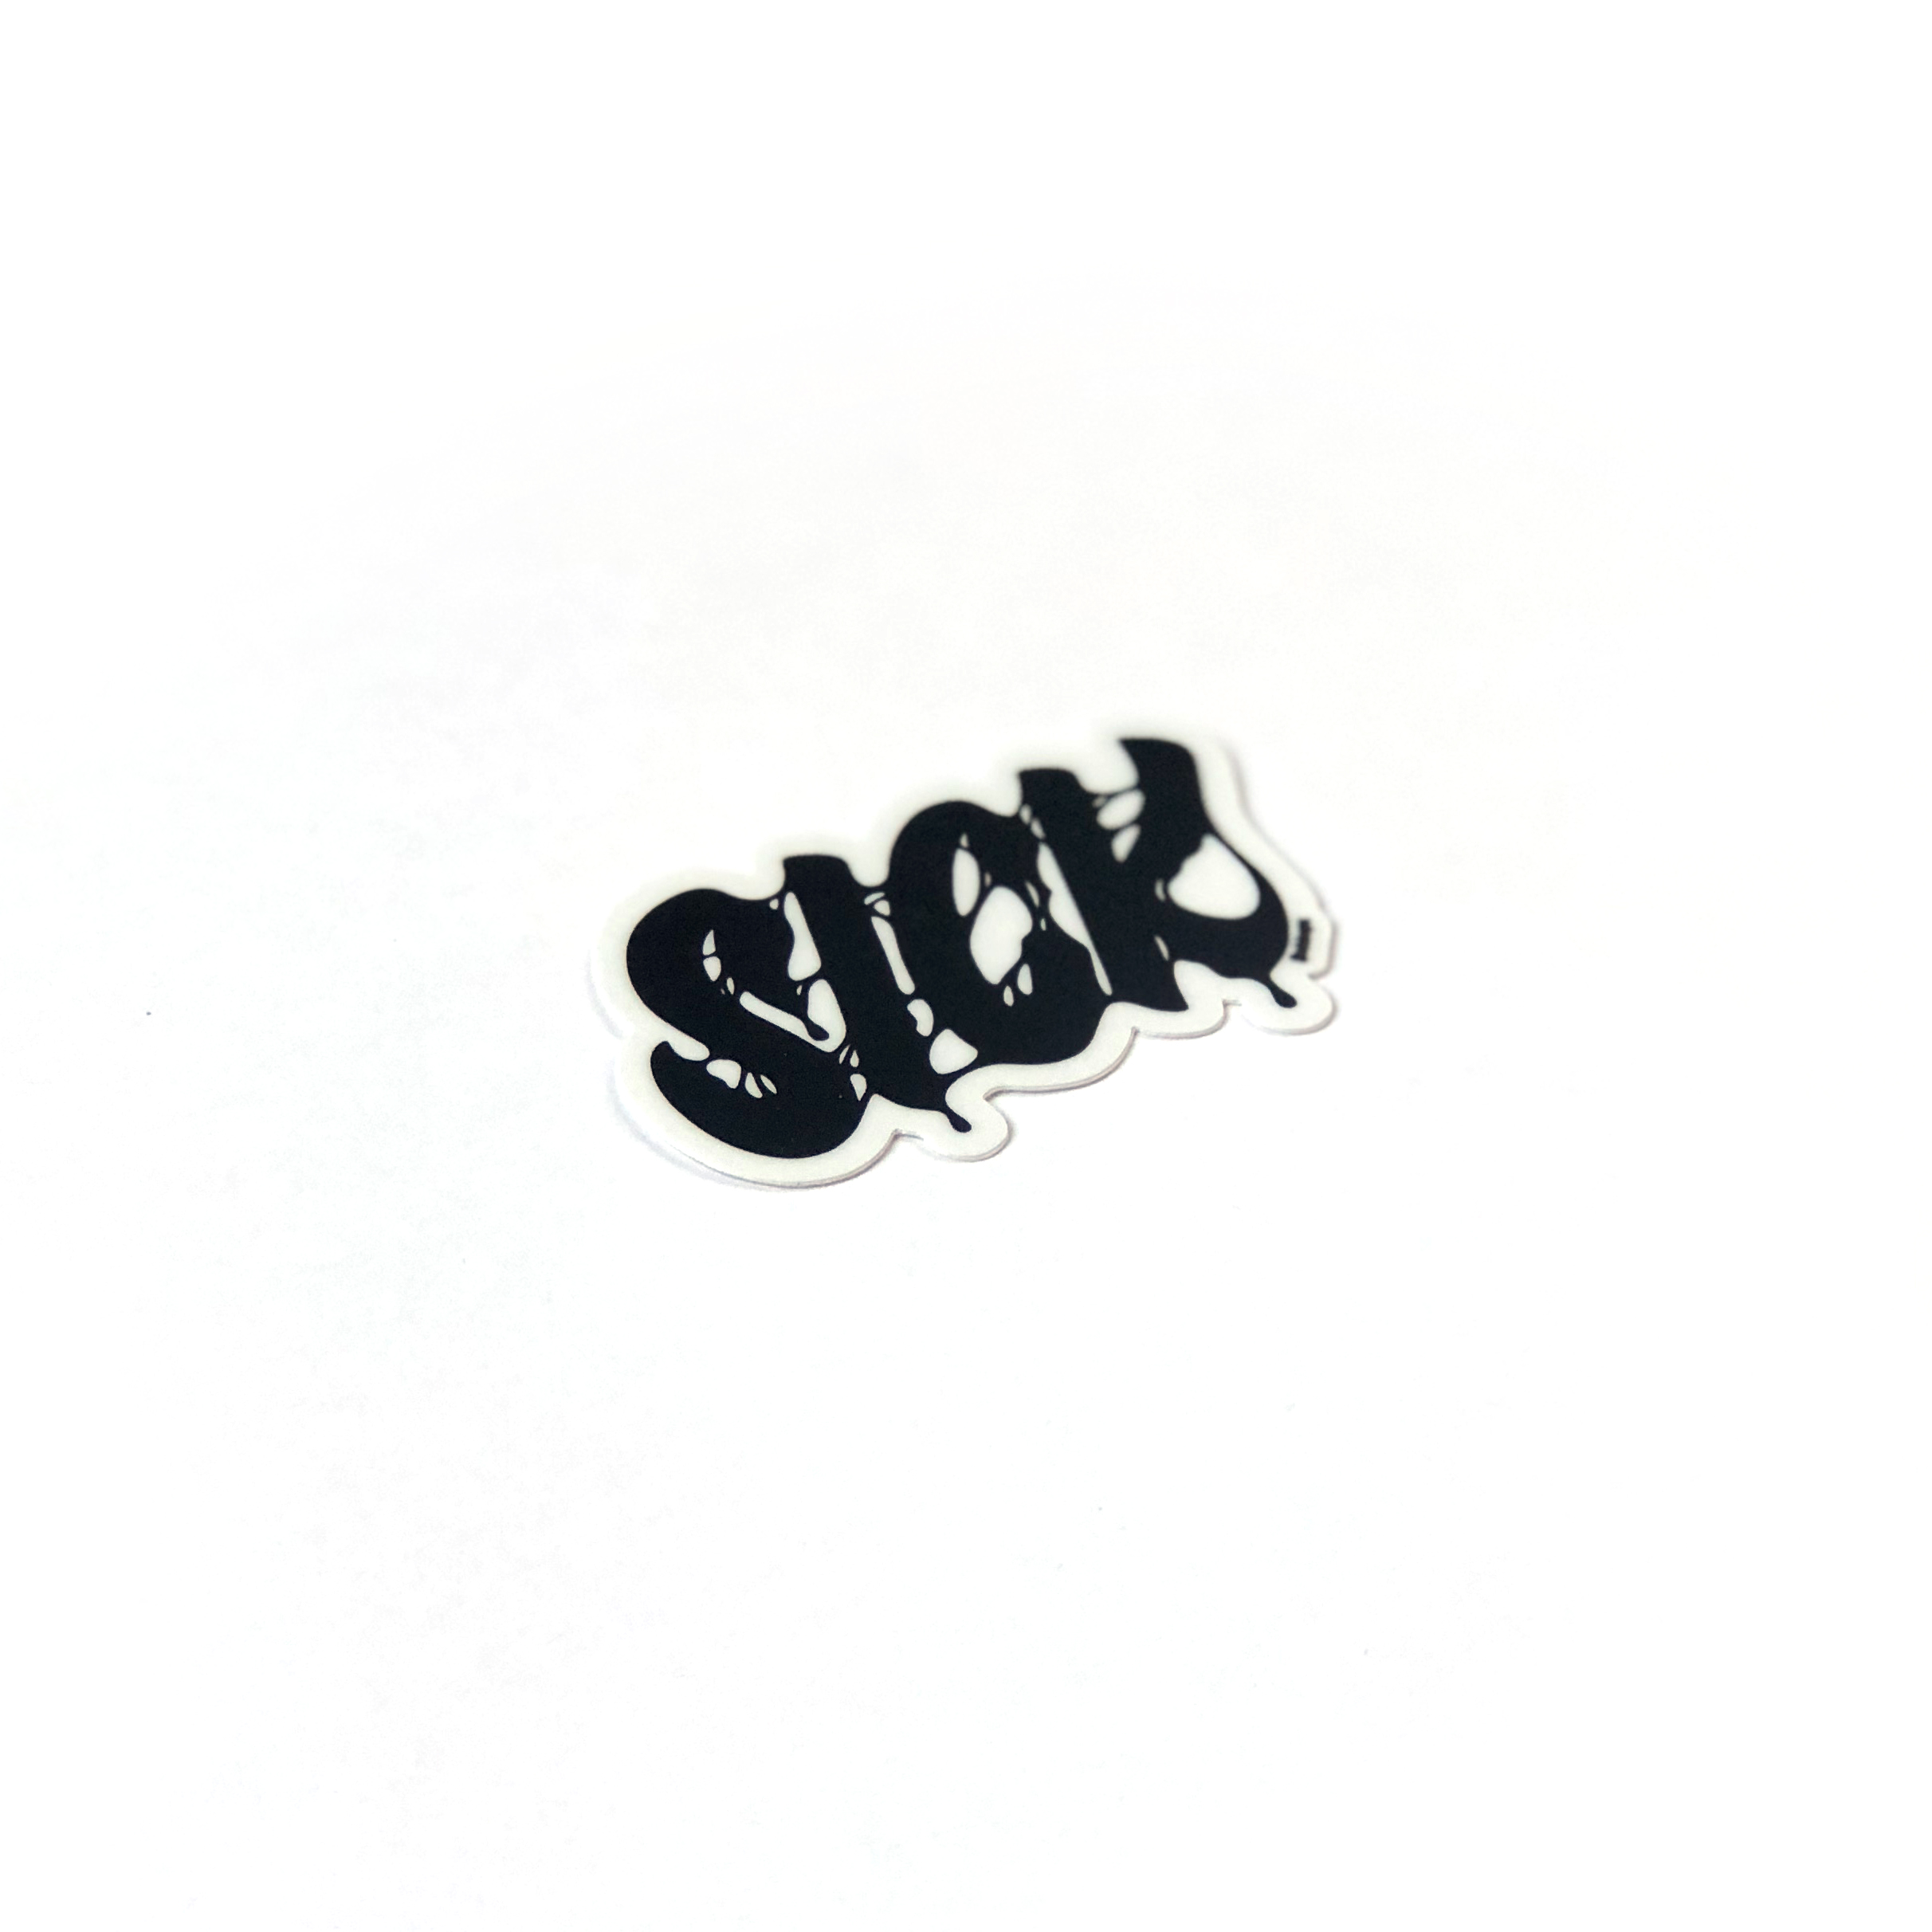 Sick stickers 5 pack